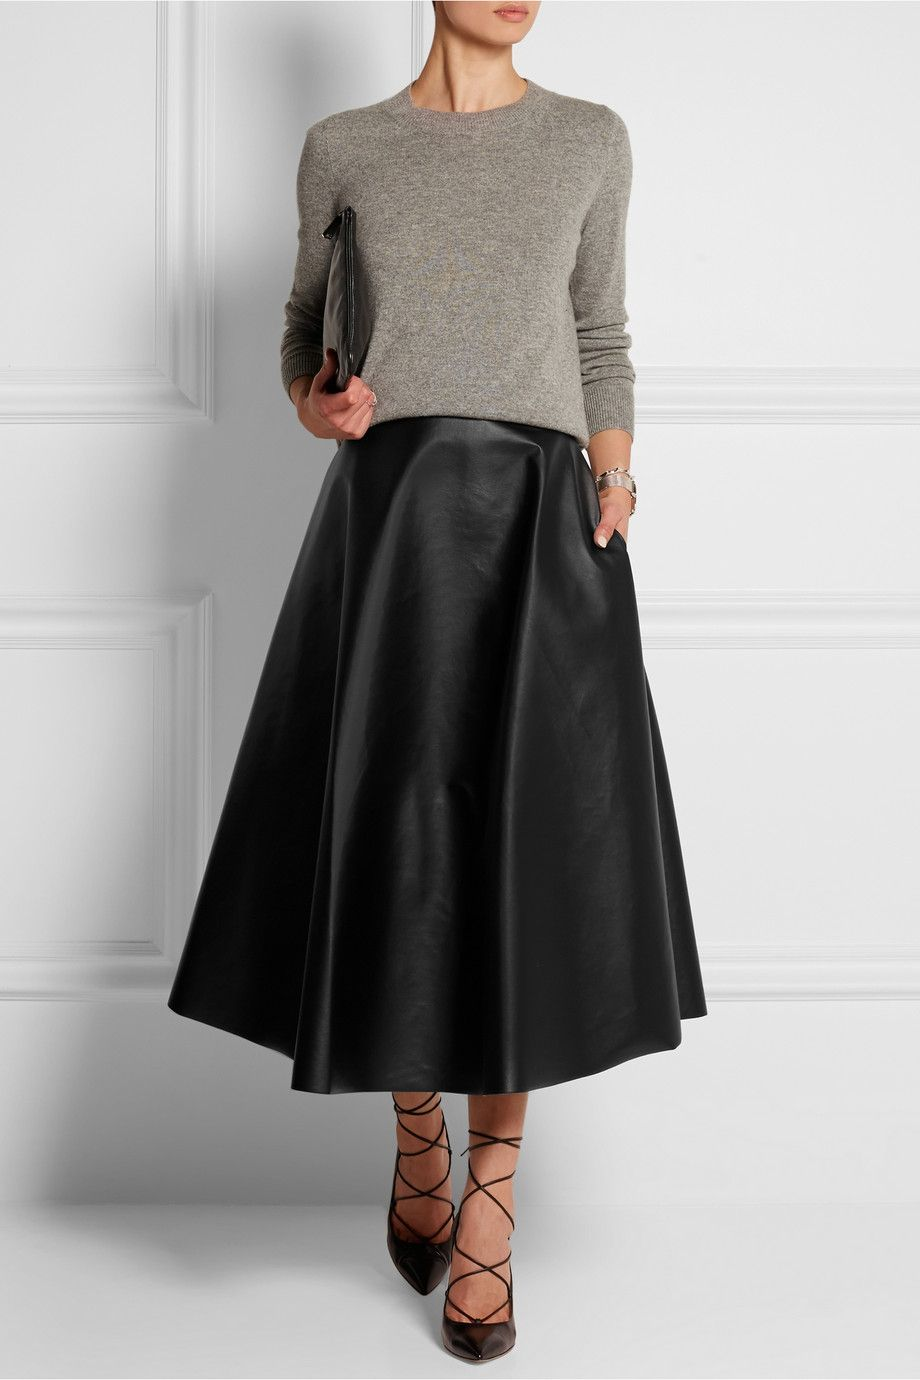 82c10d3b0 Lanvin - Fluted faux leather midi skirt | / f a s h i o n ...